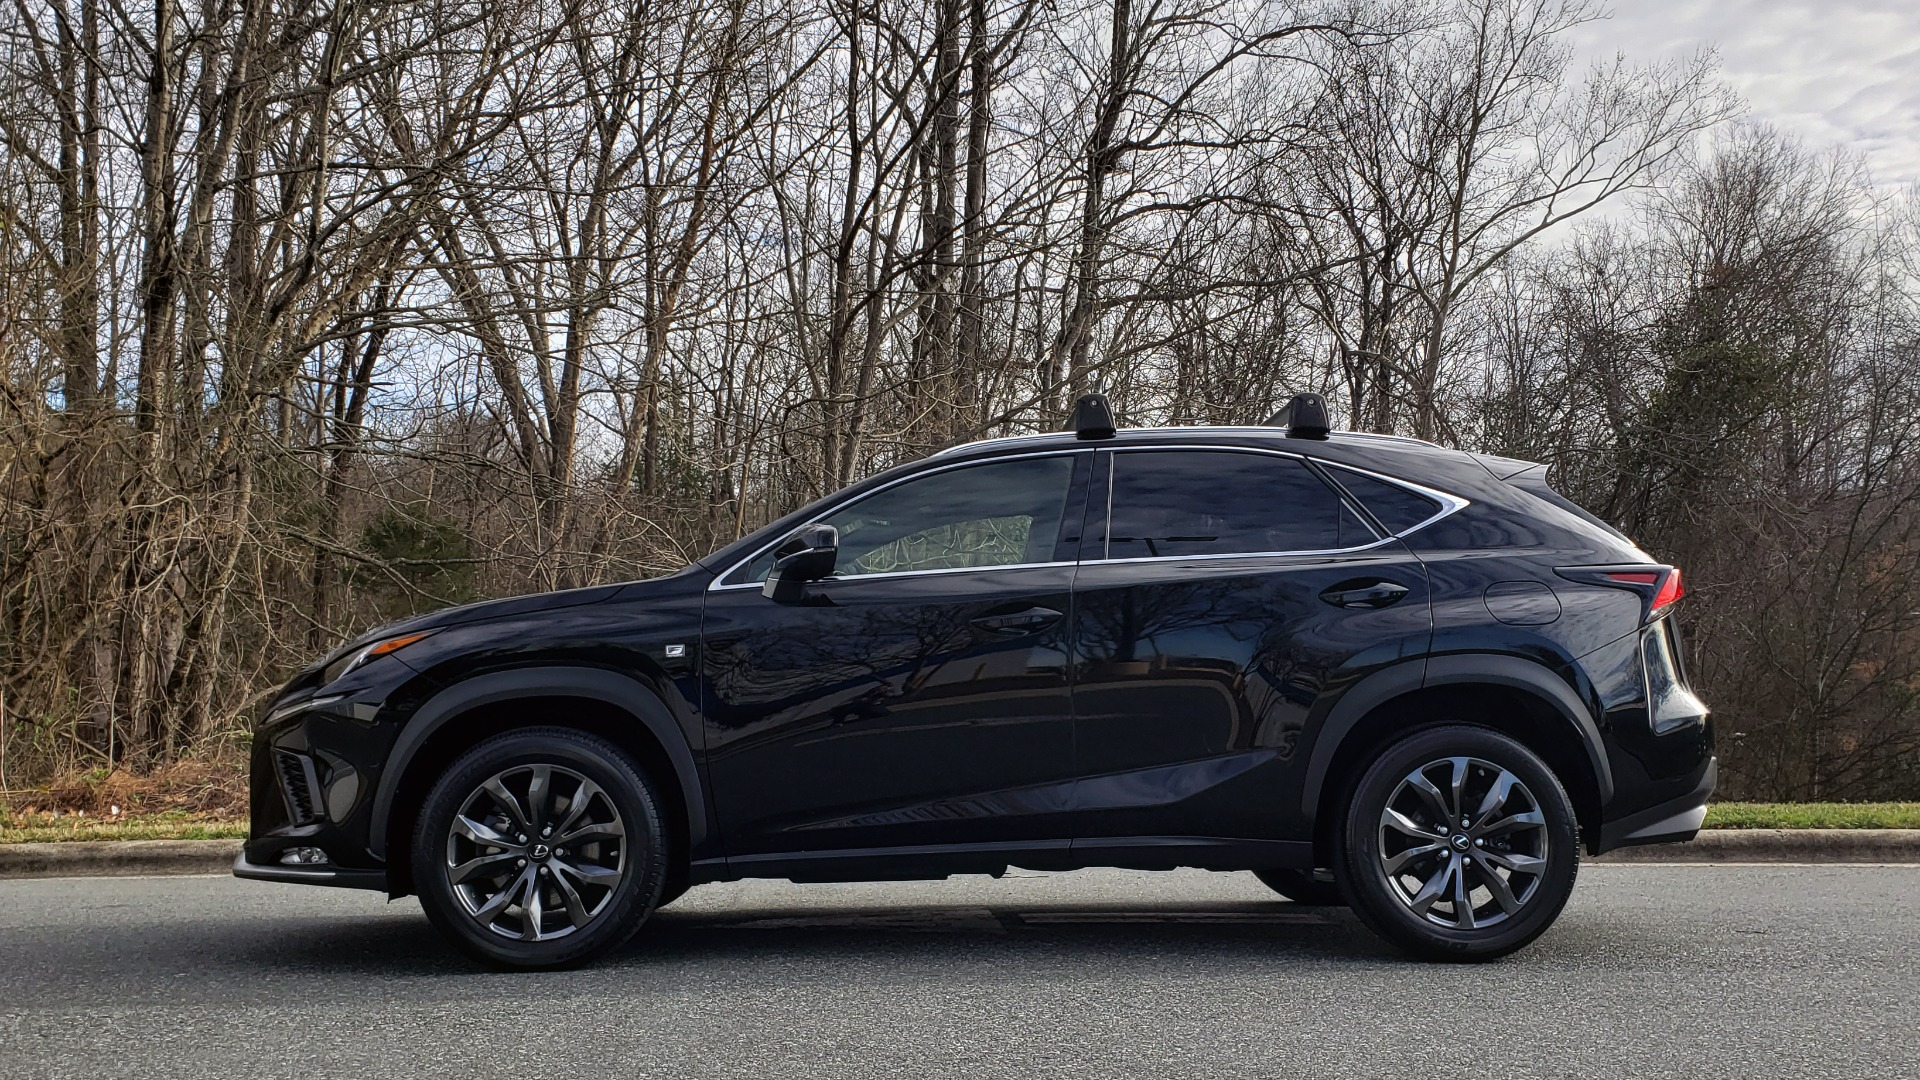 Used 2018 Lexus NX 300 F-SPORT / LEATHER / ACCY PKG / 18IN WHEELS for sale Sold at Formula Imports in Charlotte NC 28227 2